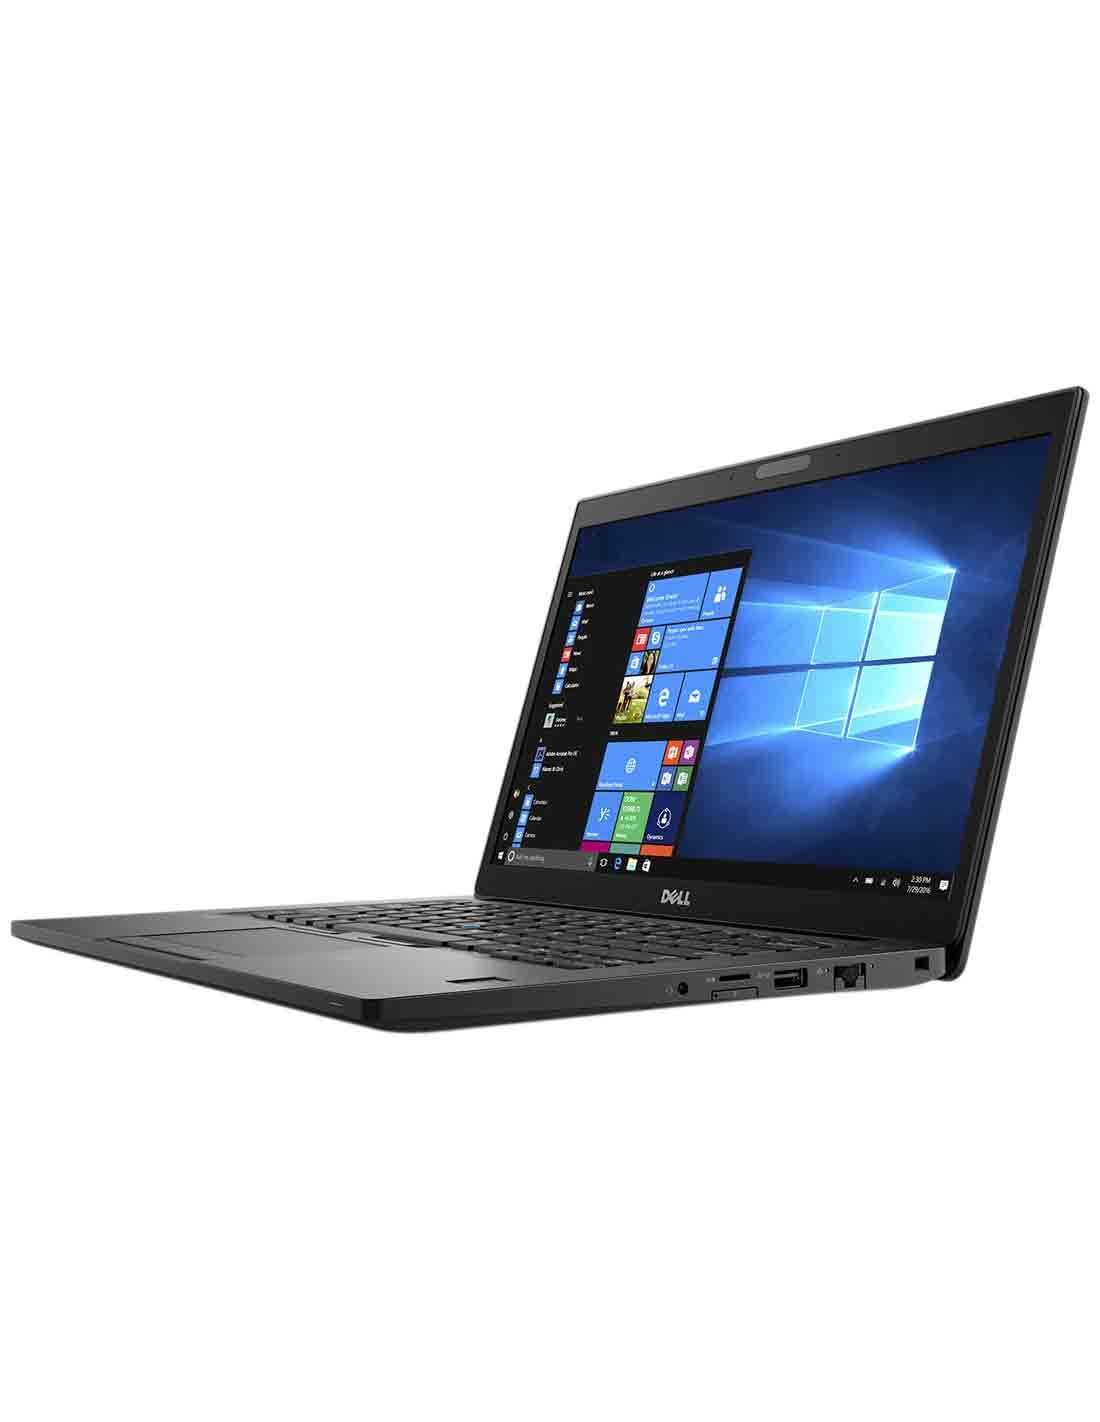 Dell Latitude 7480 Windows 10 Pro 64 images and photos in Dubai online shop